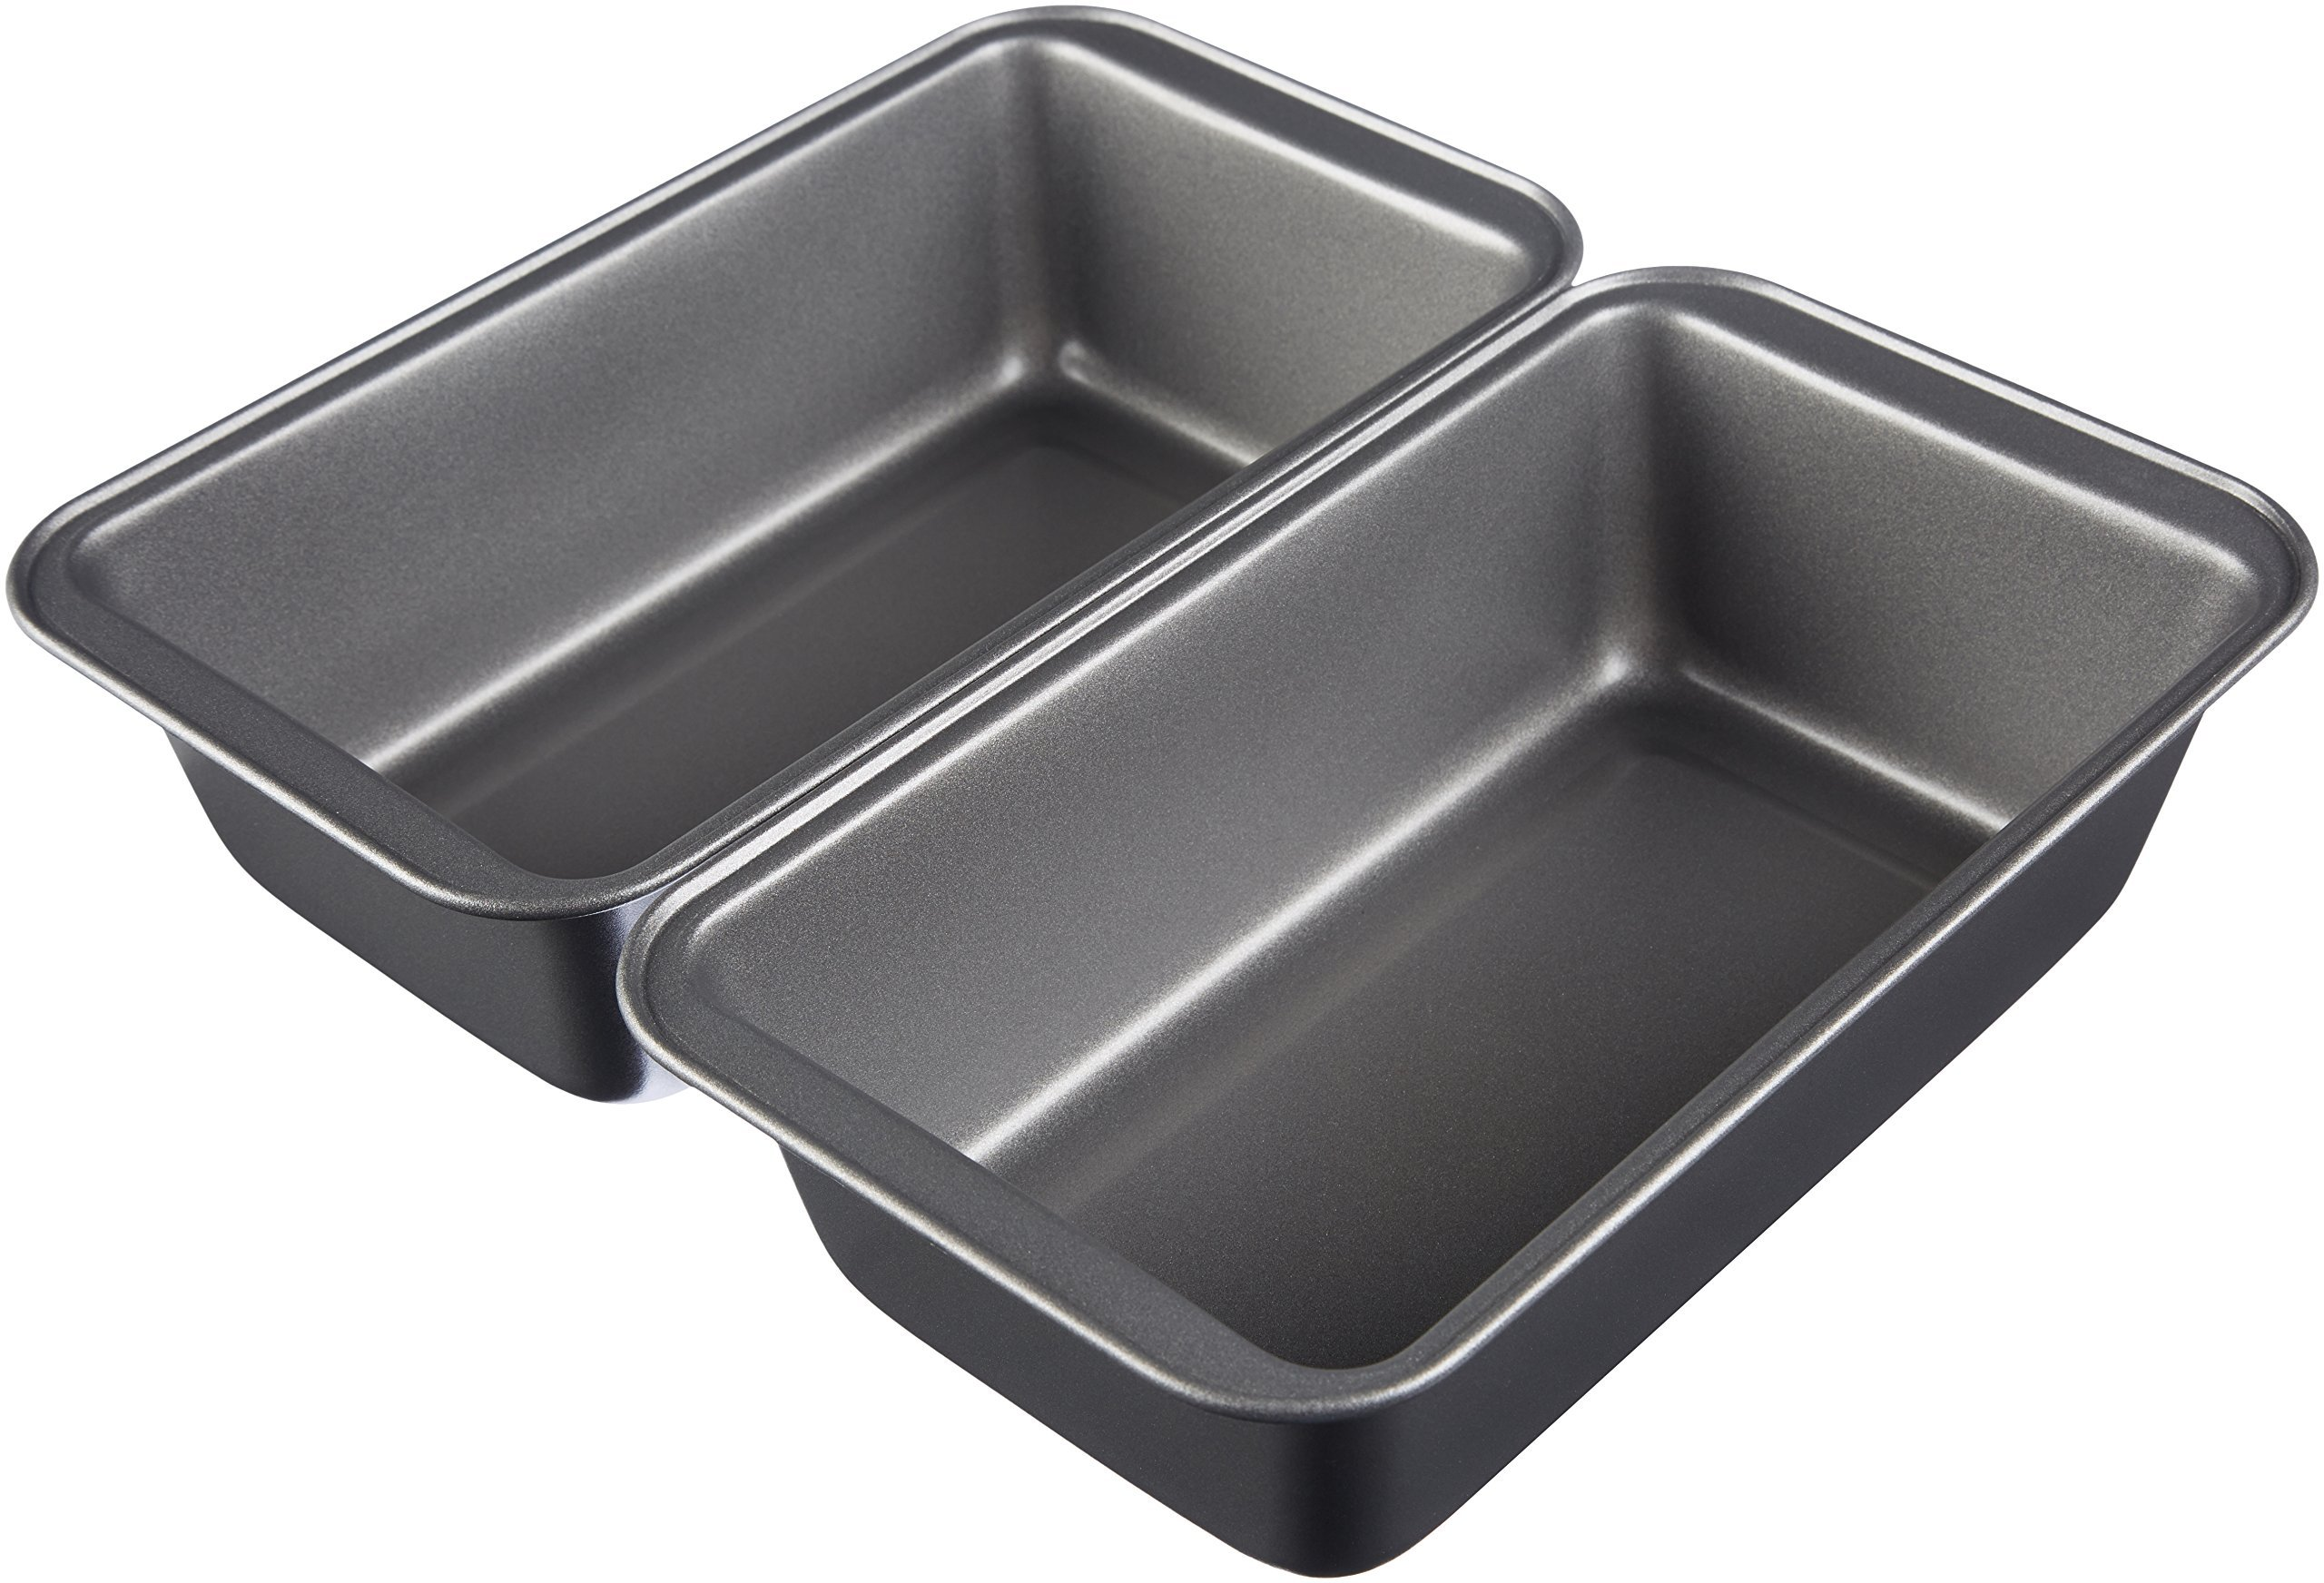 AmazonBasics Nonstick Carbon Steel Bread Pan - 9.5'' x 5'', 2-Pack by AmazonBasics